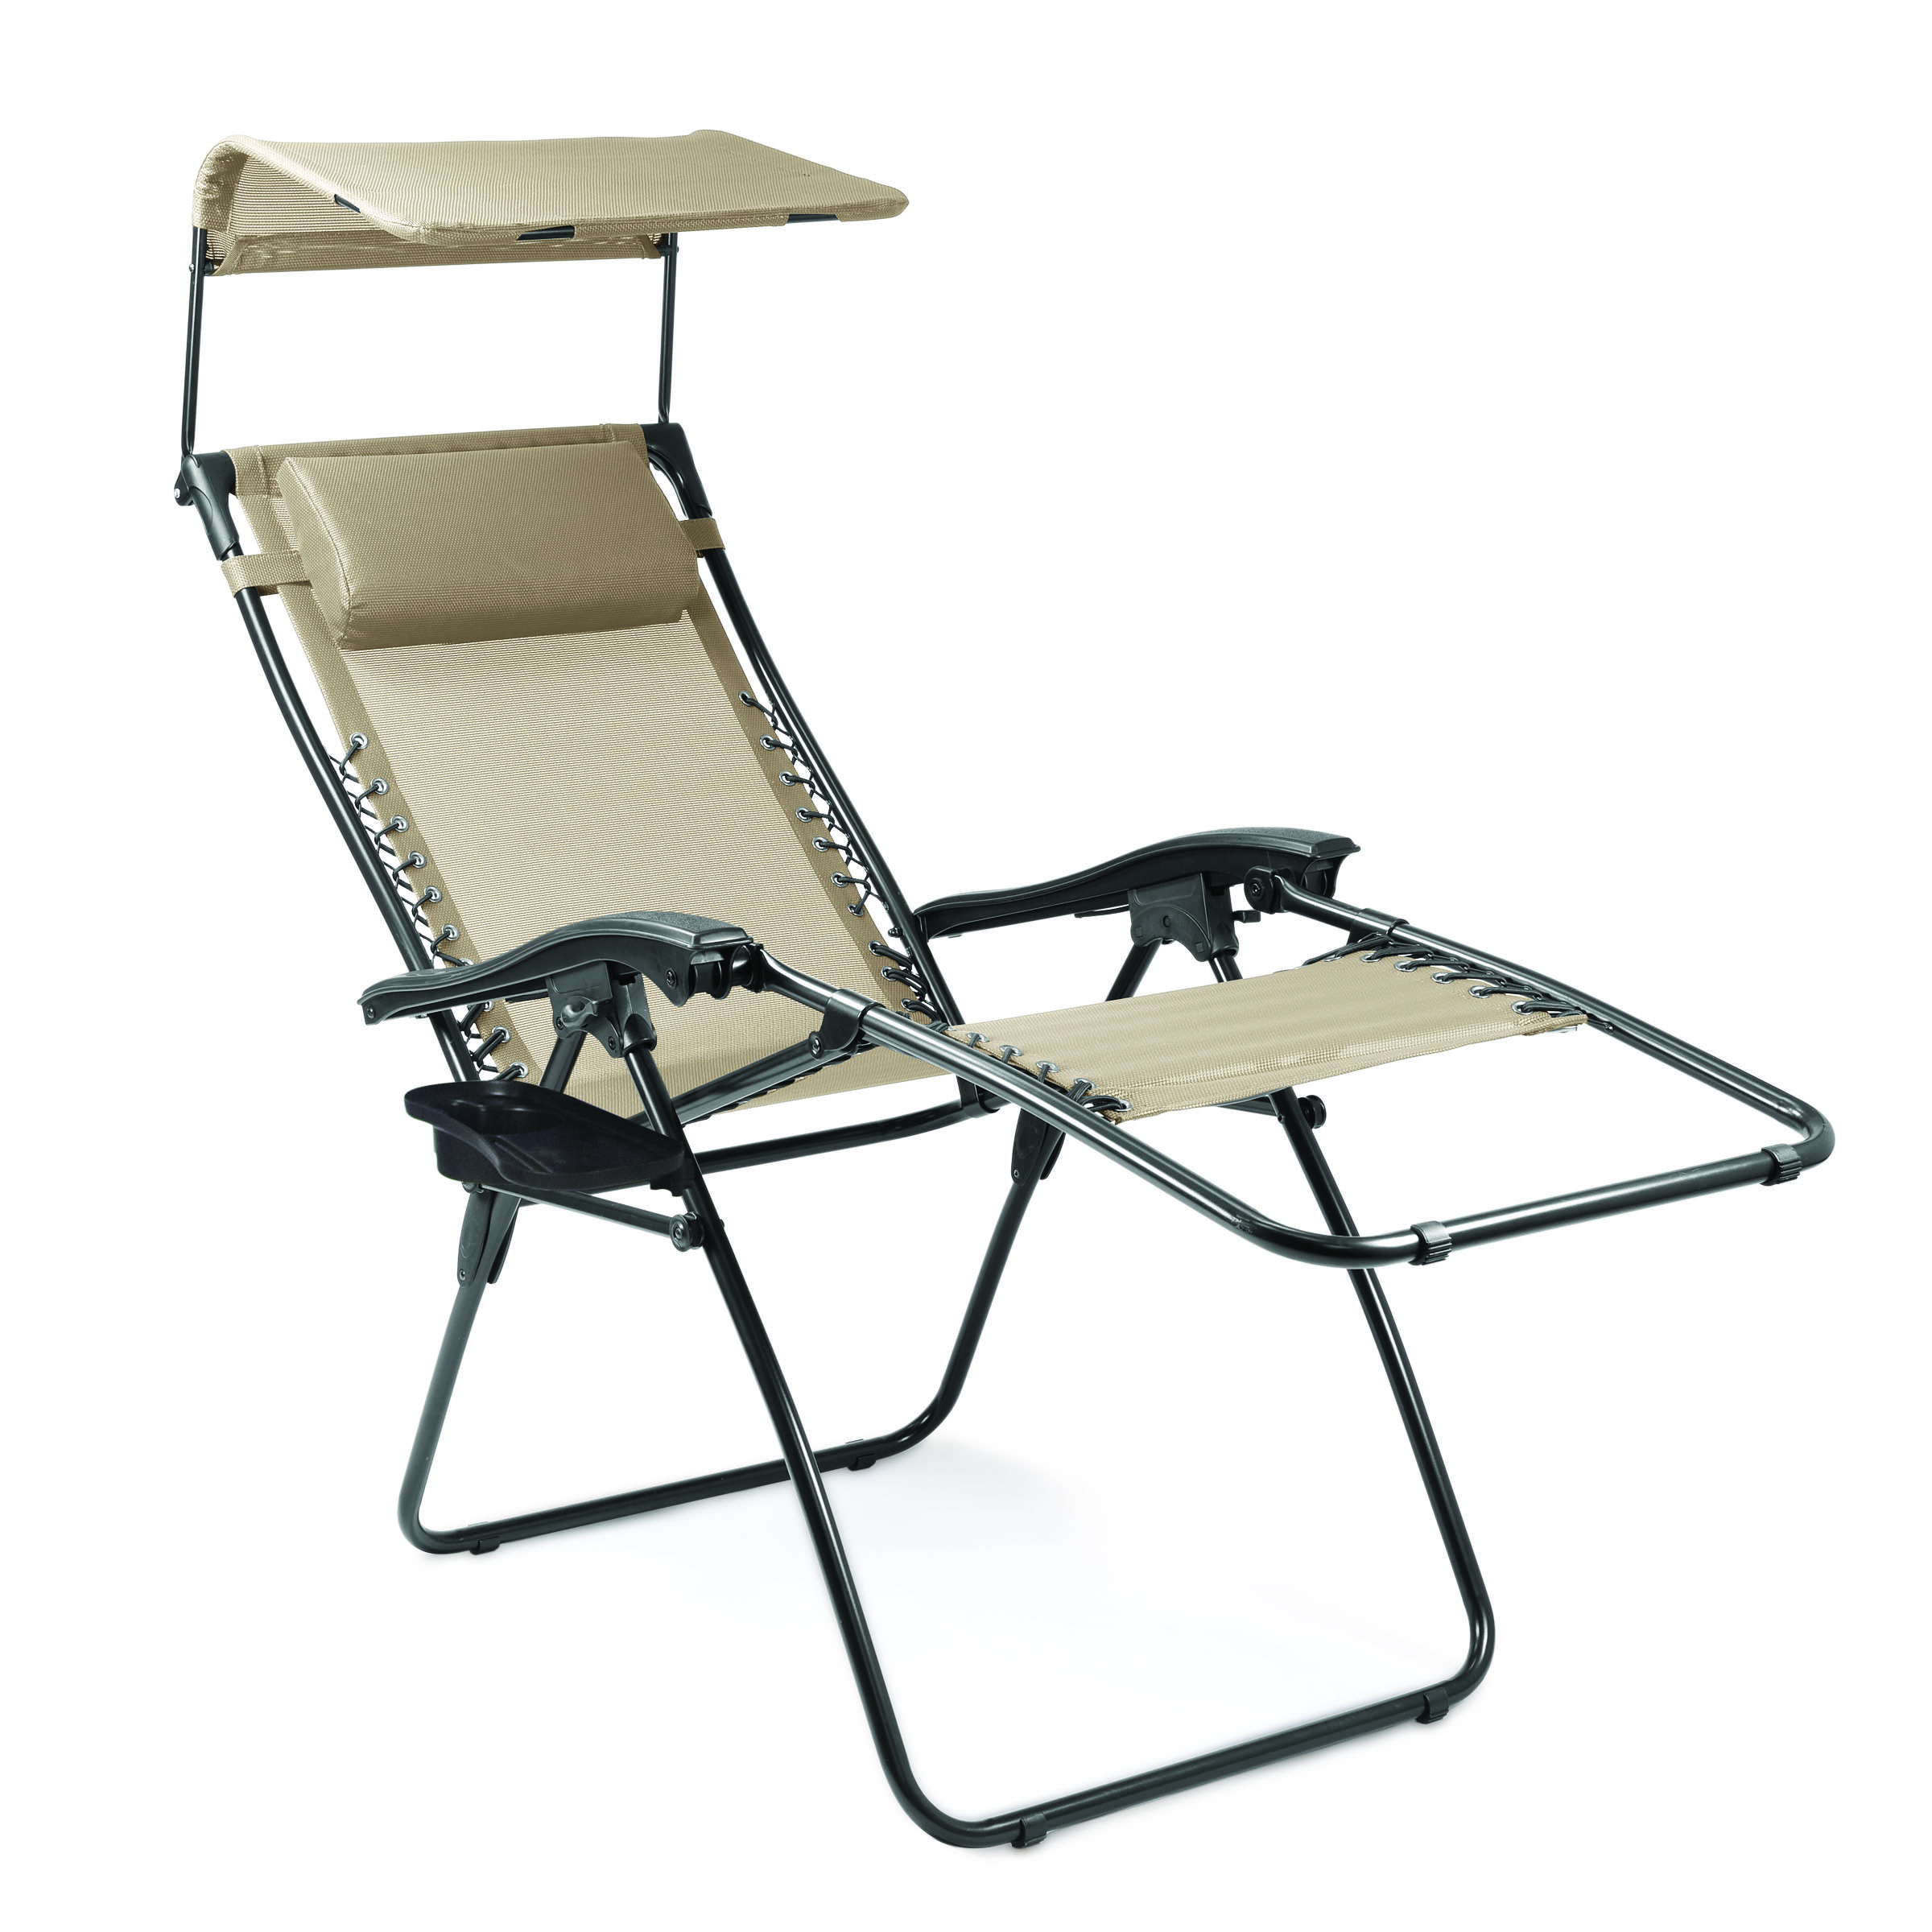 Picnic Chair Picnic Time Serenity Reclining Lounge Chair With Sunshade